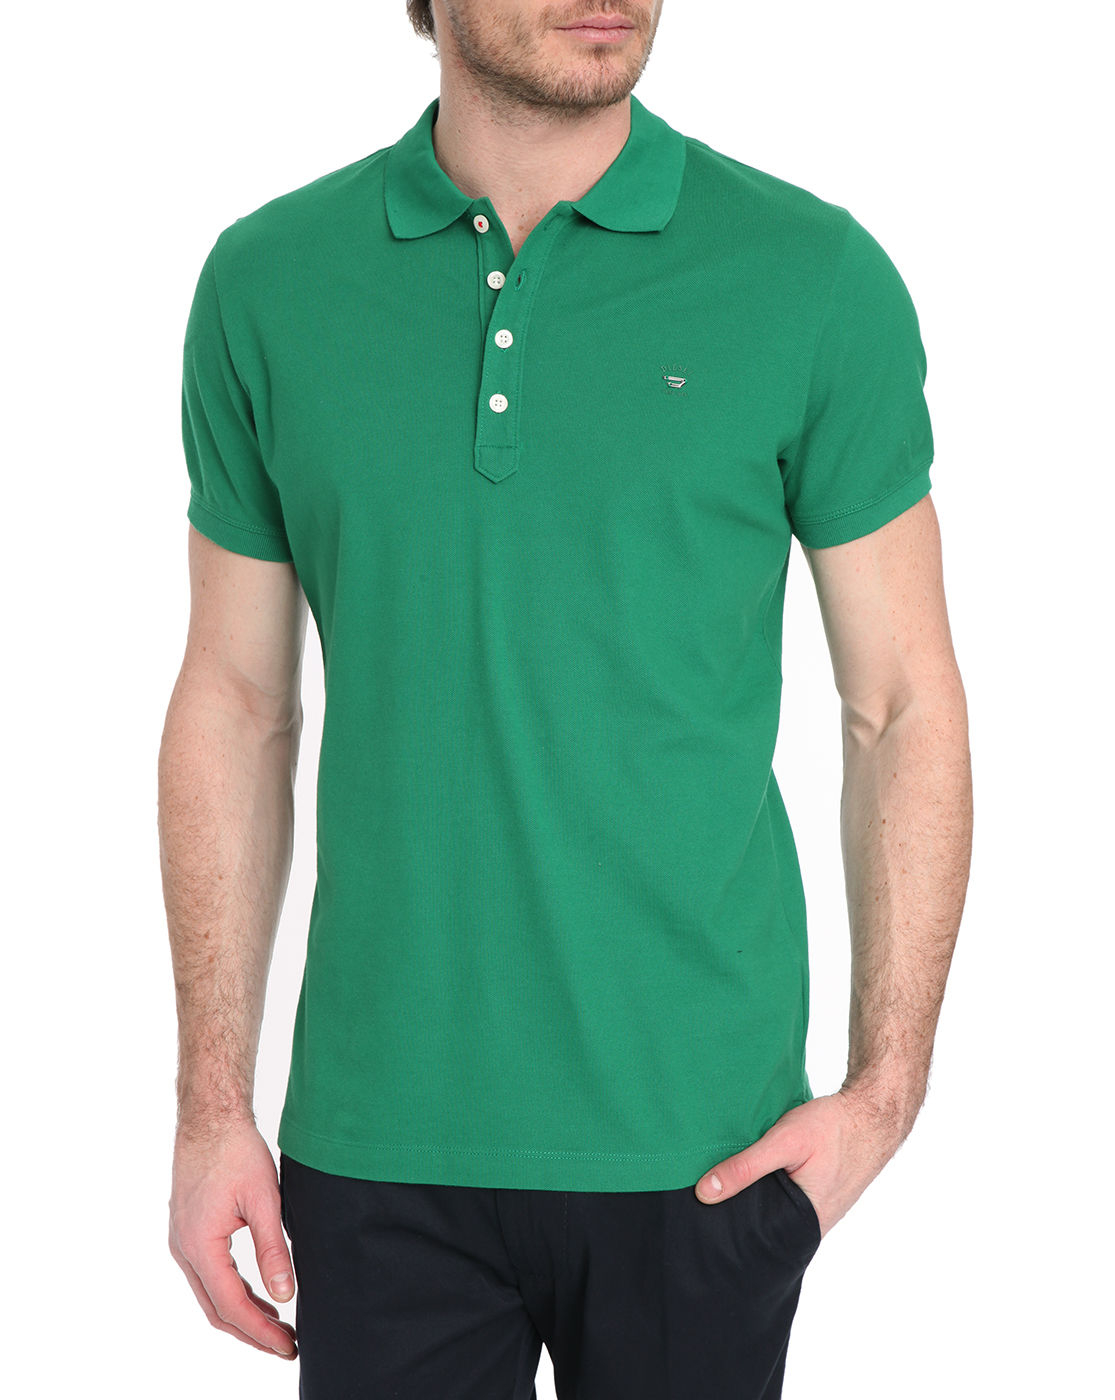 diesel yahei green short sleeved polo shirt in green for men lyst. Black Bedroom Furniture Sets. Home Design Ideas